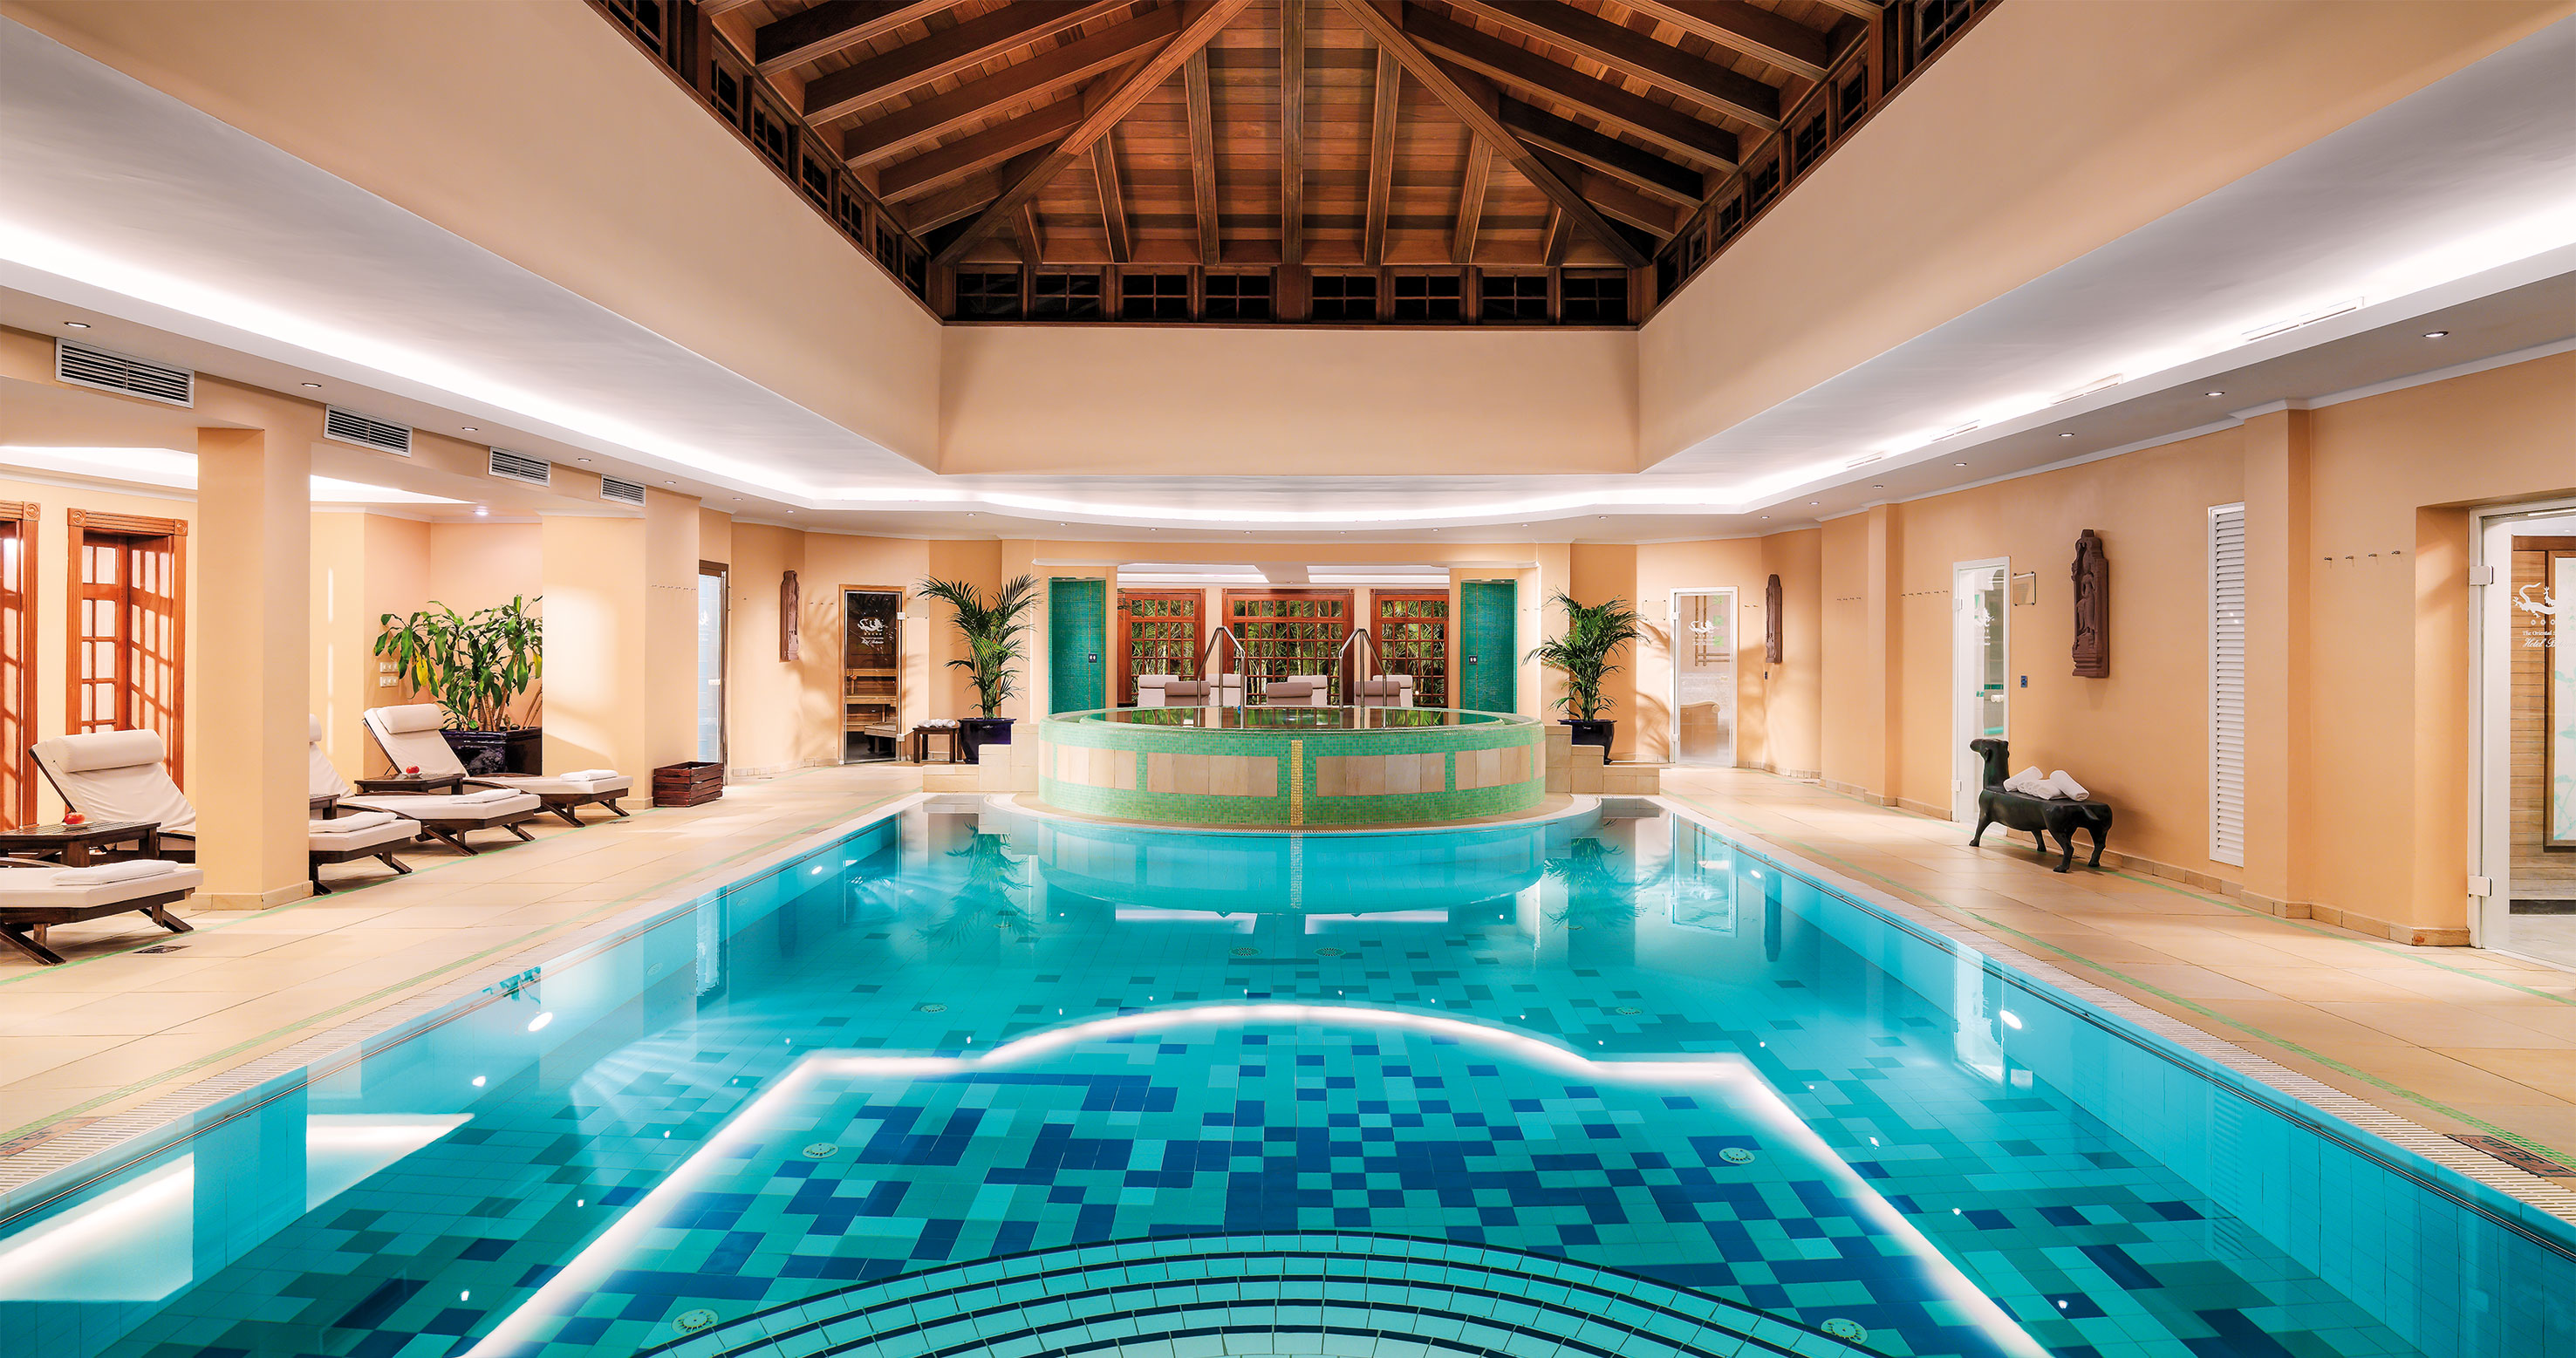 Hotel Botanico and Oriental Spa Garden joins our Bookincenter customer list